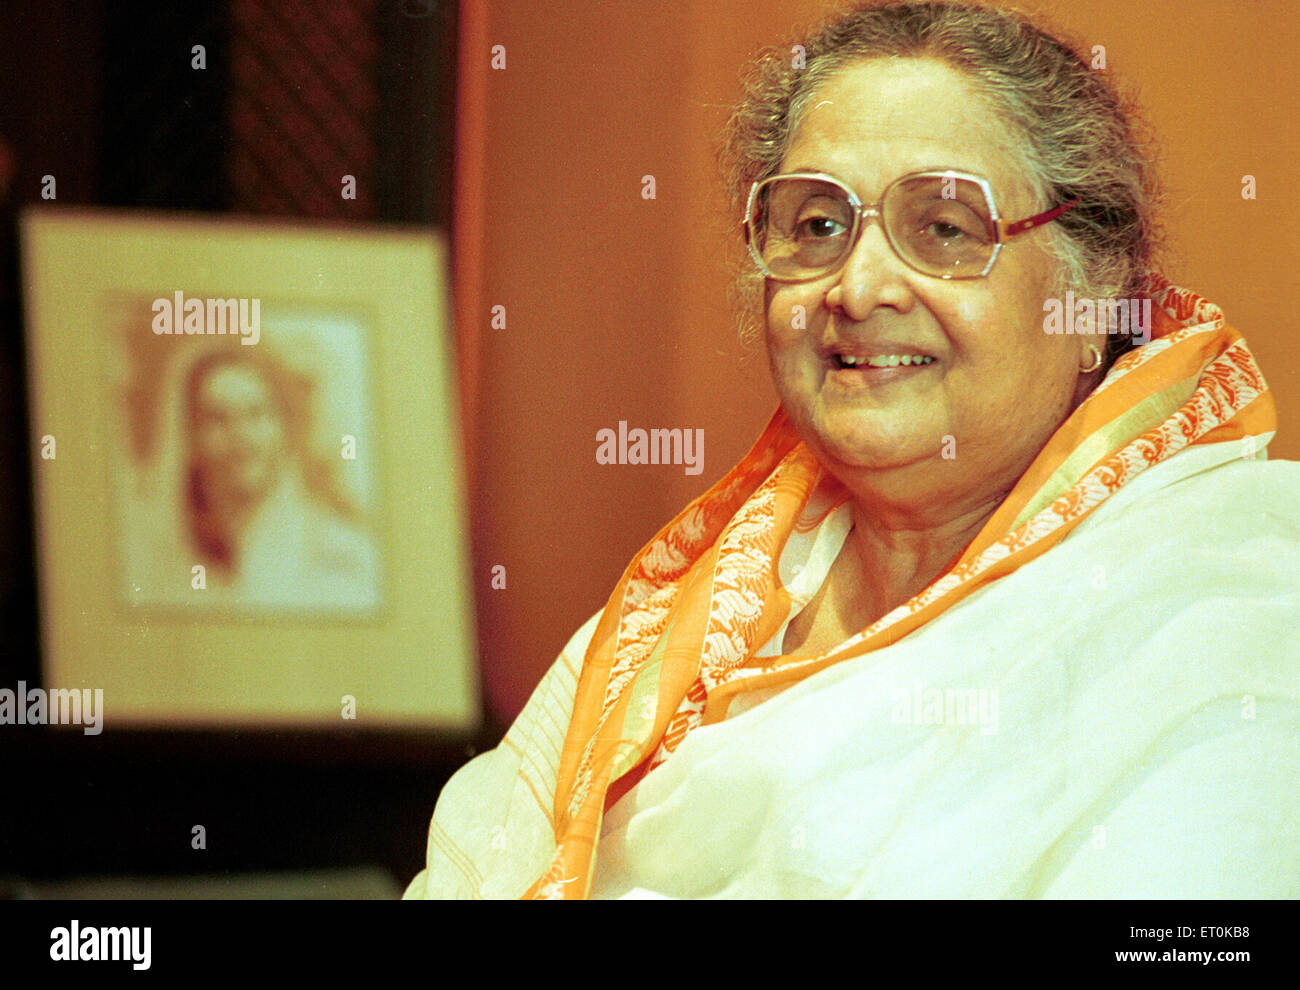 Senior Marathi film personality Sulochana during event Bombay Mumbai ; Maharashtra ; India NO MR Stock Photo